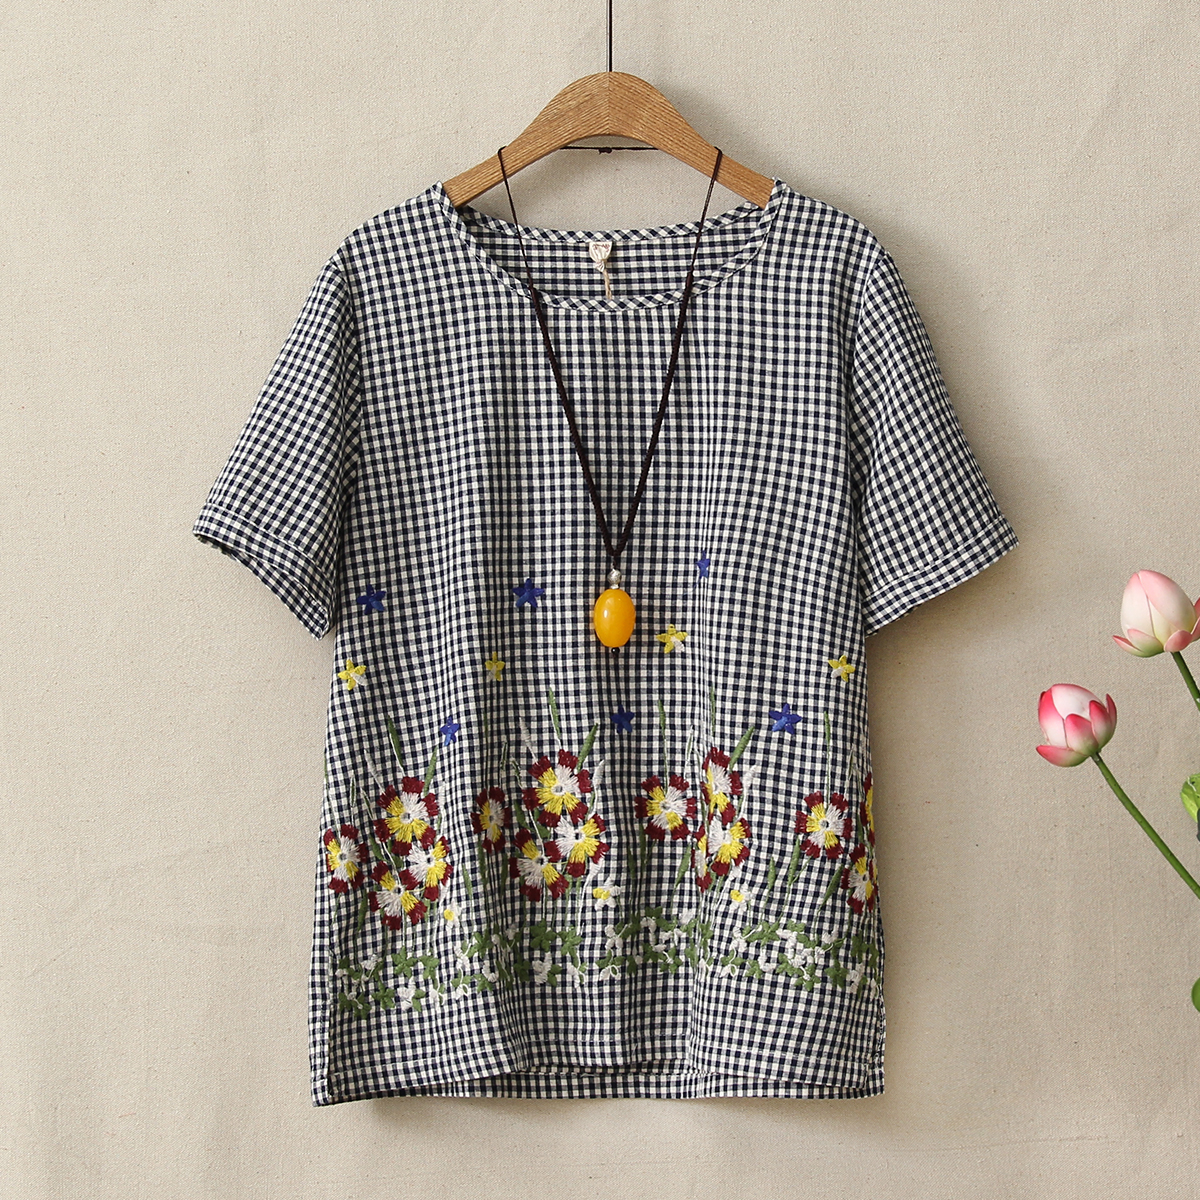 New Cotton Linen T-shirts Short Sleeve Plaid Tops Woman Clothes Summer Embroidery Floral Tee Shirt Women Vinage Round Neck Blusa